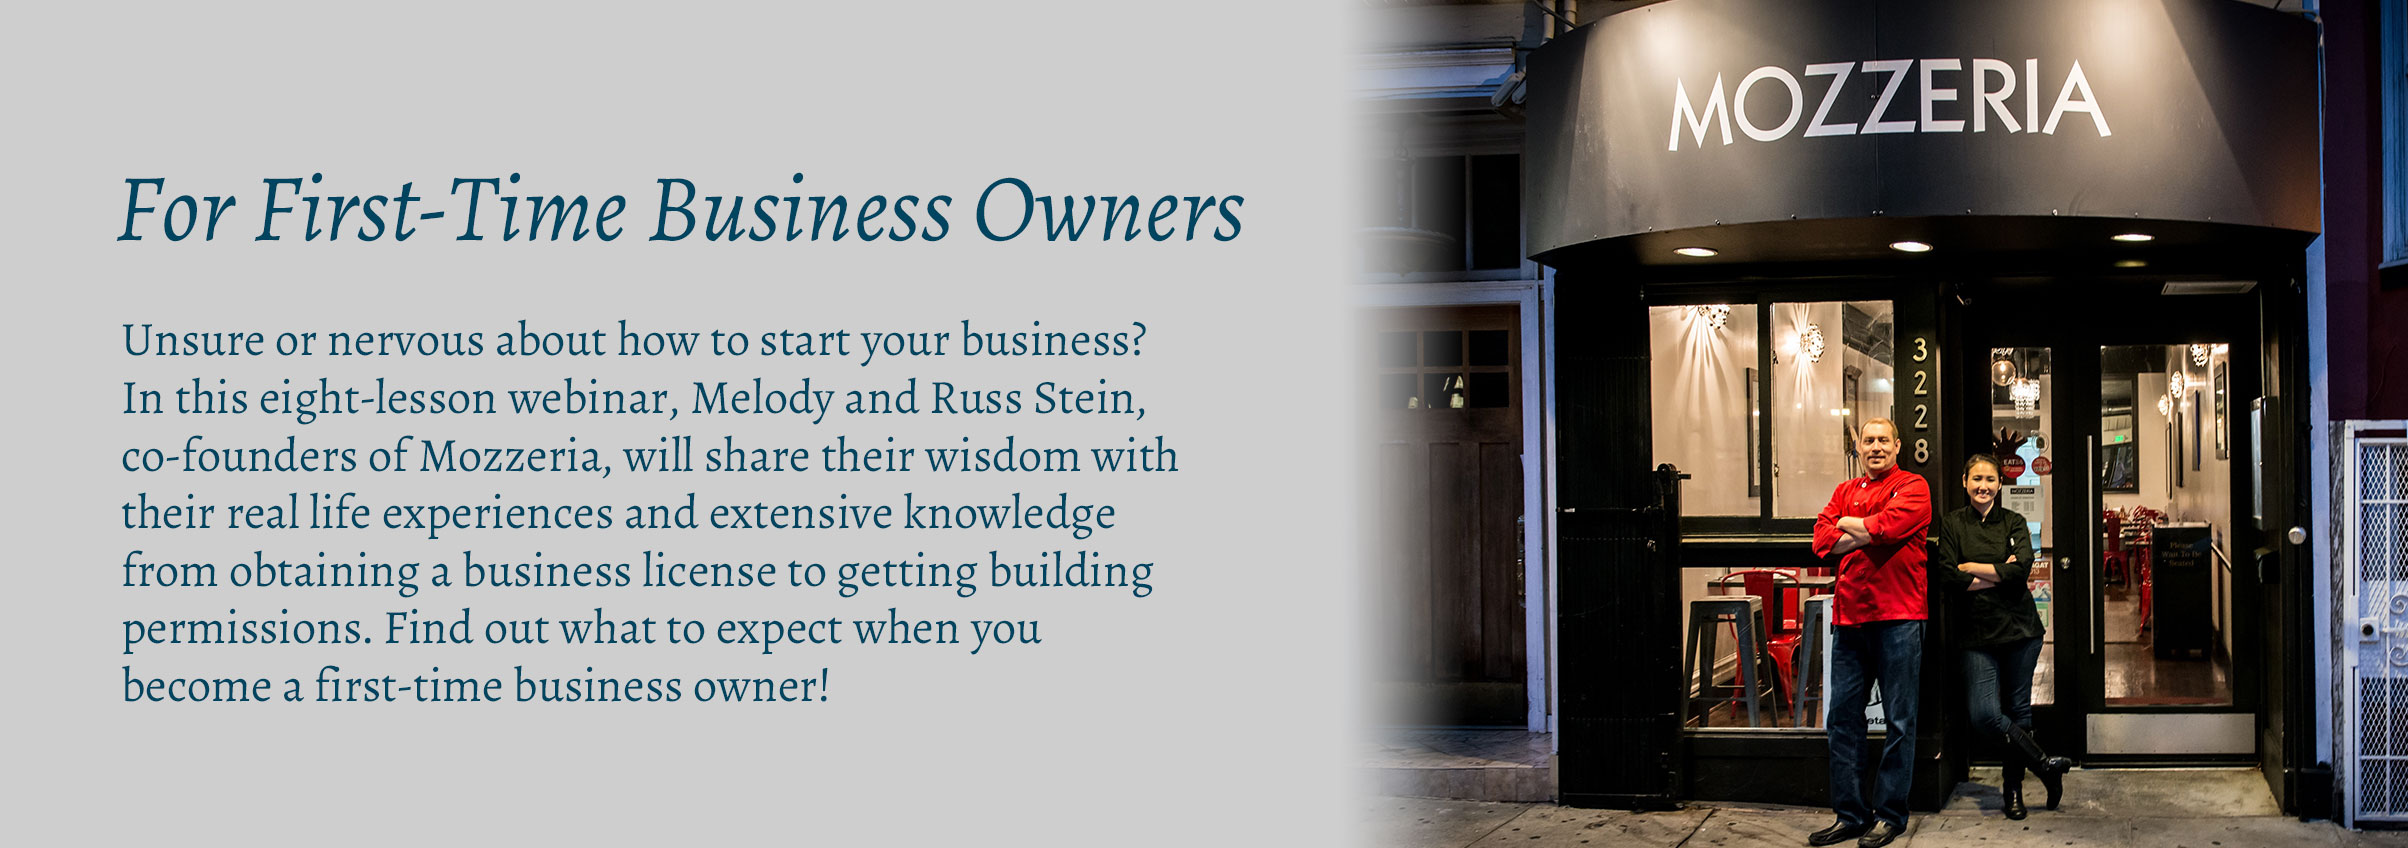 First-Time-Business-Owners4.jpg